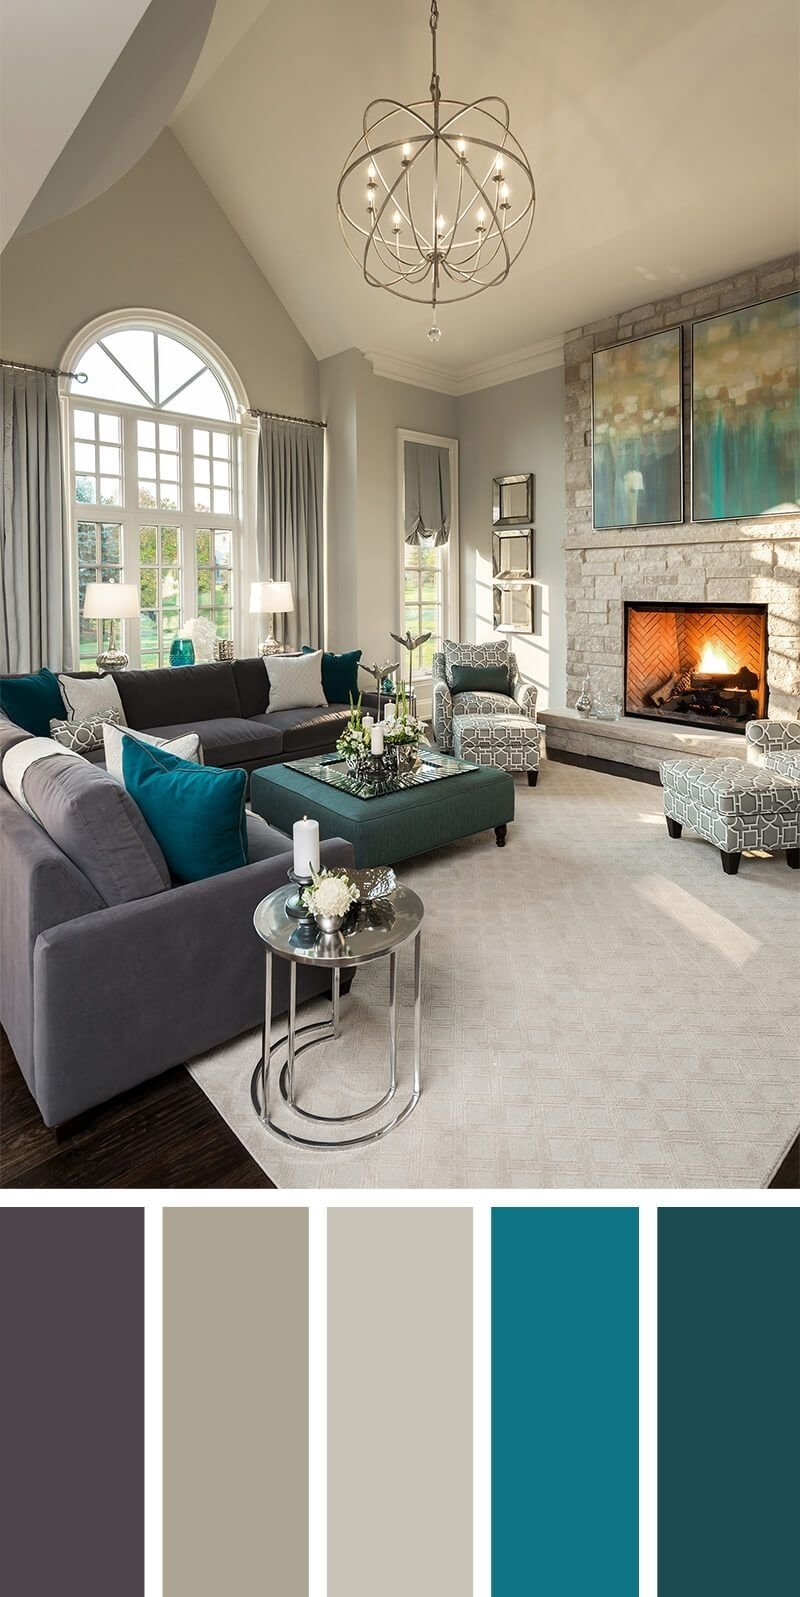 10 Stunning Living Room Paint Ideas Pinterest 7 living room color schemes that will make your space look 2021